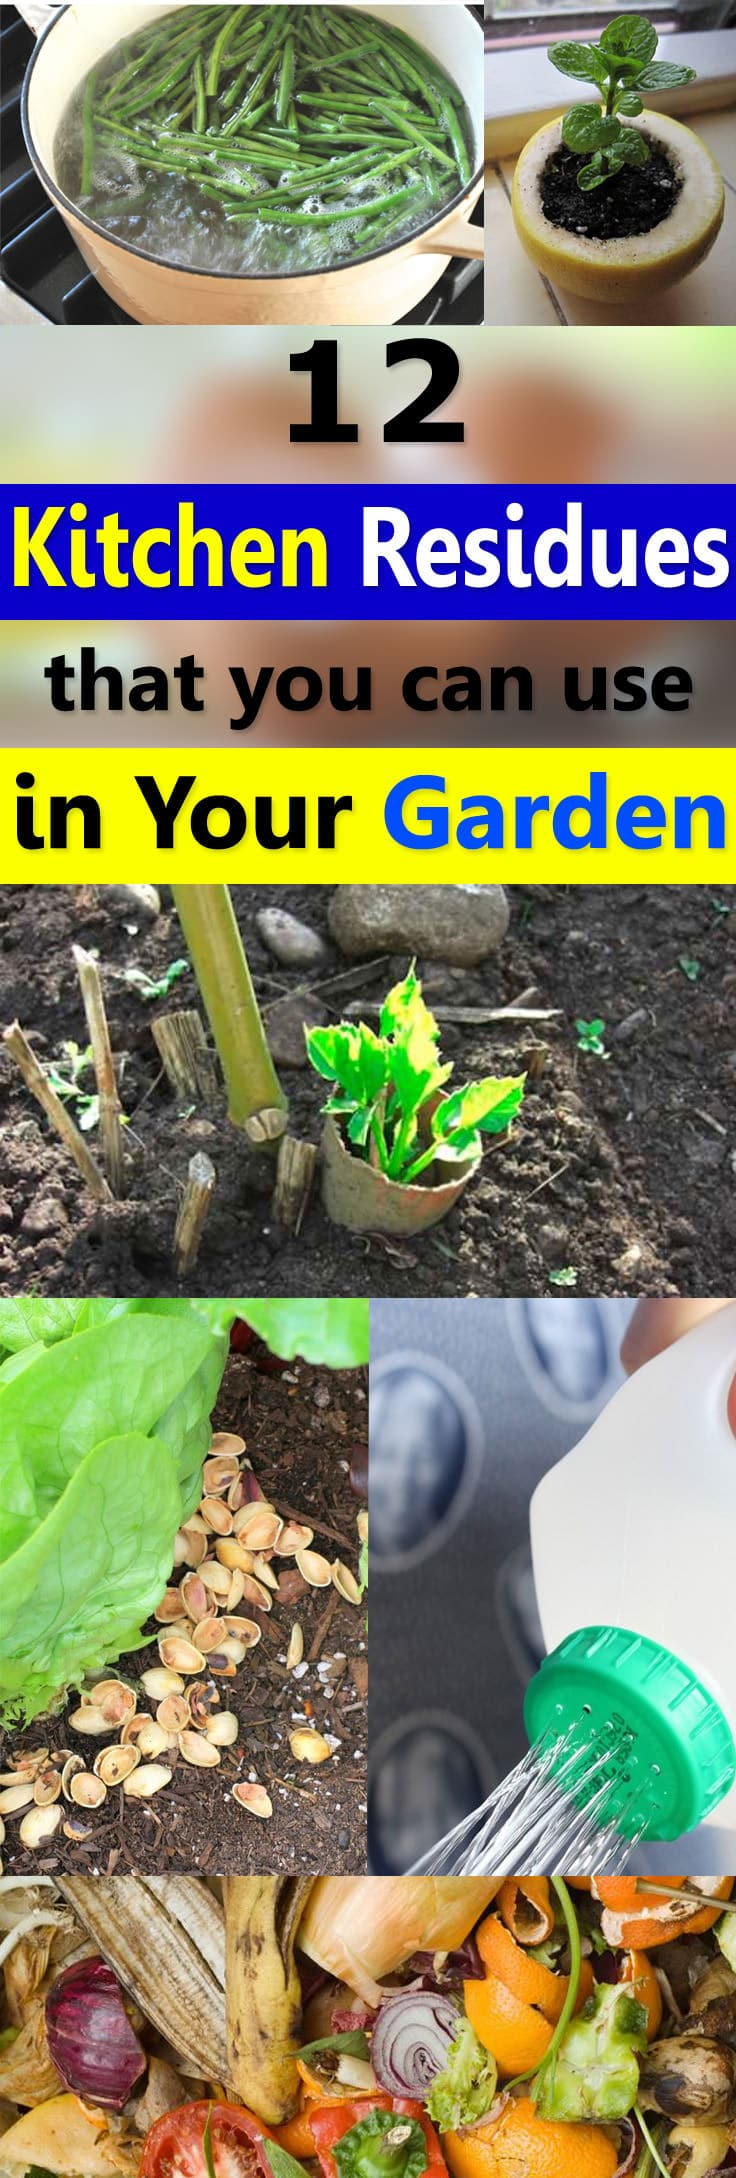 Do you know that a lot of waste stuff and kitchen residues that you usually throw away can be used in the garden? Find out more!